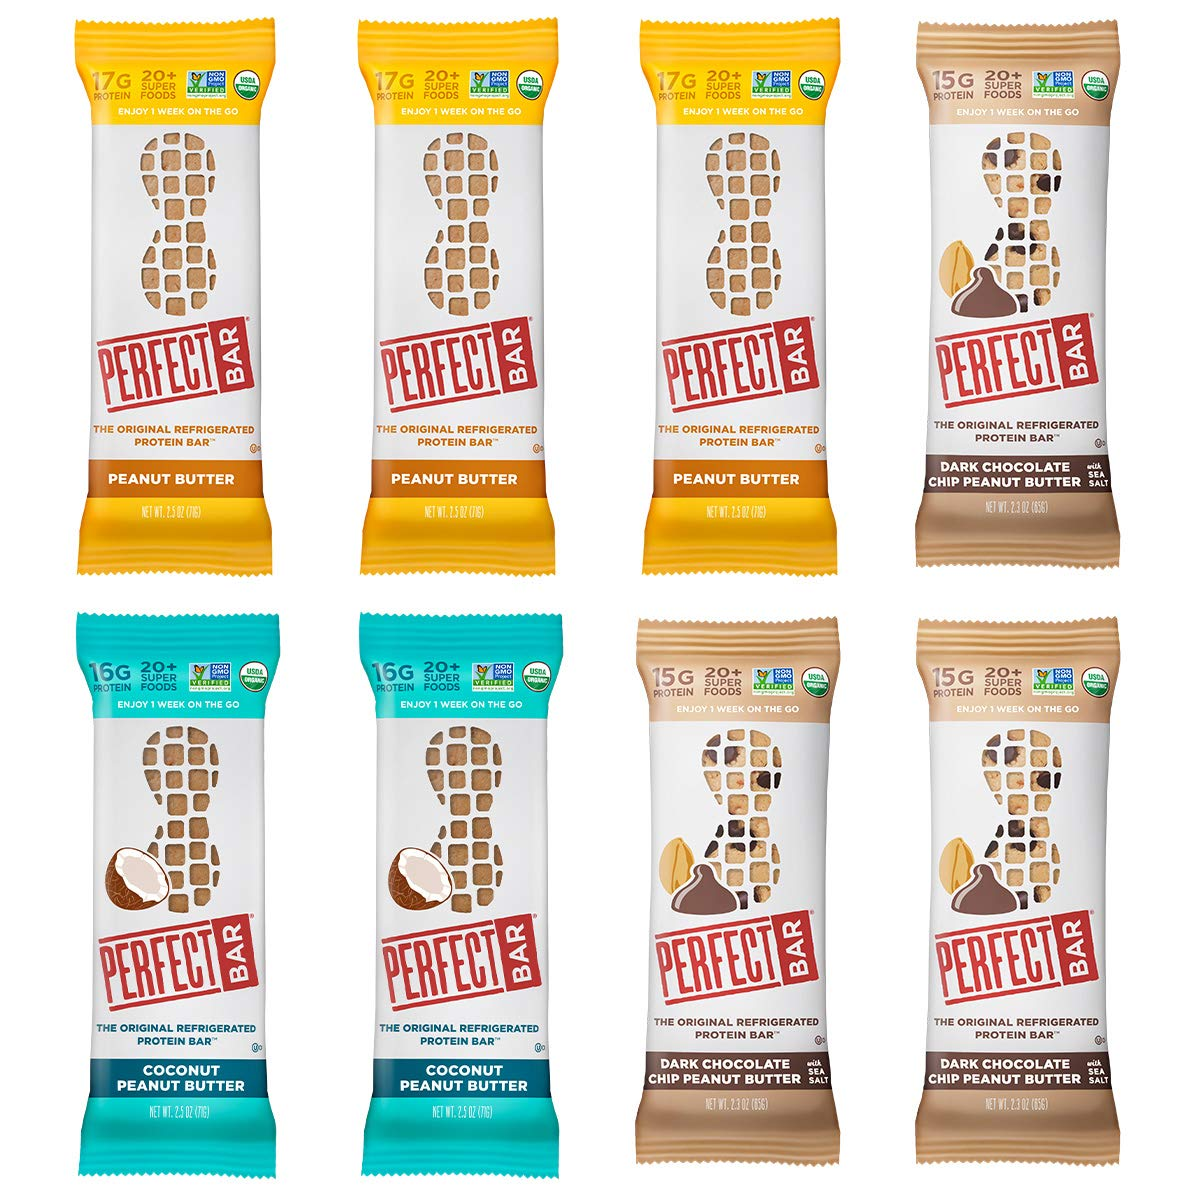 Perfect Bar Original Refrigerated Protein Butter Peanut Max 46% OFF 4 years warranty Lov